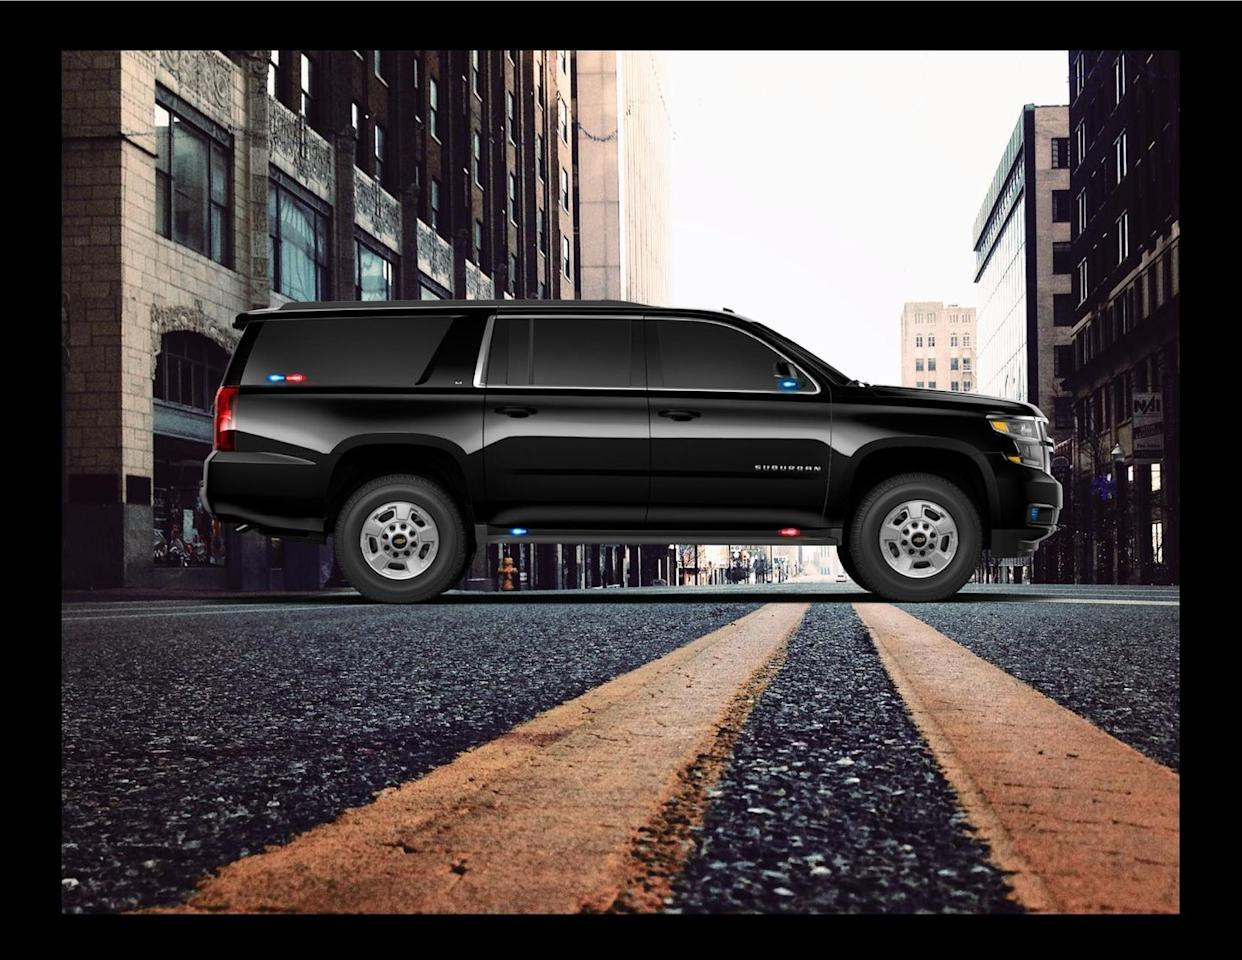 """<p><strong>Event:</strong> State-Sanctioned Lockdown<br><strong>Strategy:</strong> Sneak out in plain sight.<br></p><p>Pre-apocalyptic sorts of tensions take a while to play out into full-on lockdowns, so you've had time to equip your black Chevrolet Suburban HD (today available only to fleets, but you can get around that snafu, right?) with the requisite """"secret service"""" treatment. That means lights, antennae, tinted windows, and the like.</p>"""